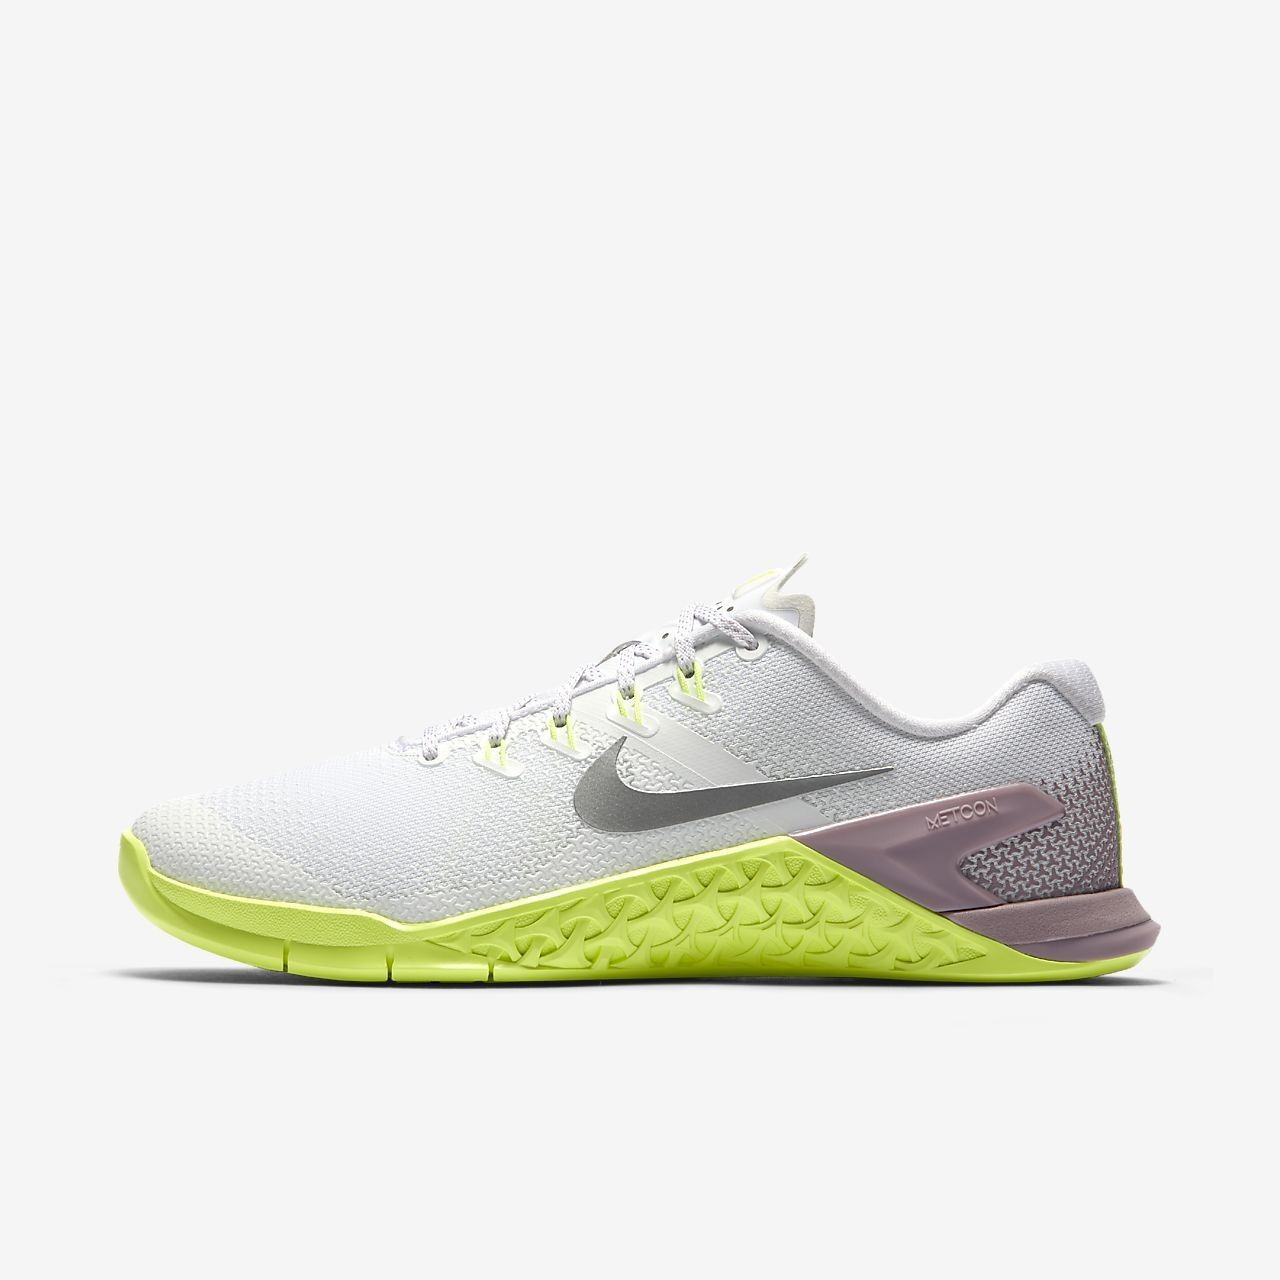 WOMEN'S NIKE METCON 4 SHOES white silver 924593 102 MSRP $130